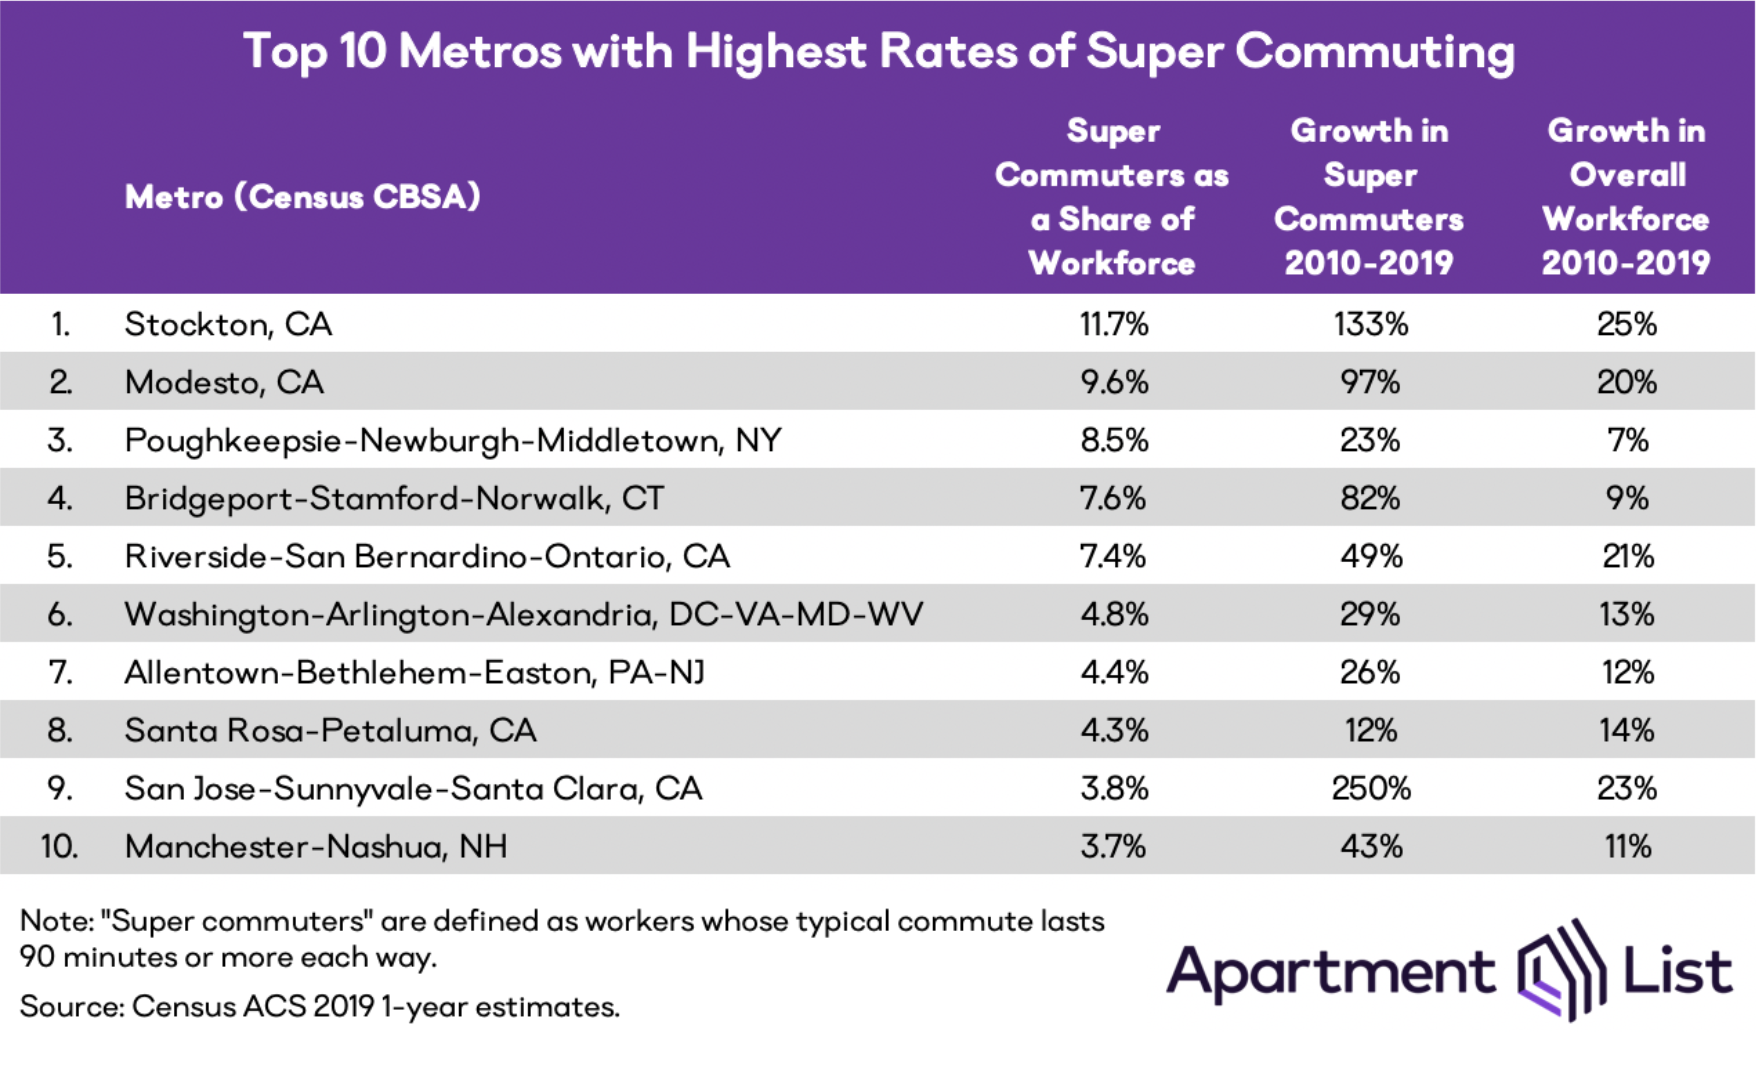 A list of the top 10 metros with the highest rates of super commuting